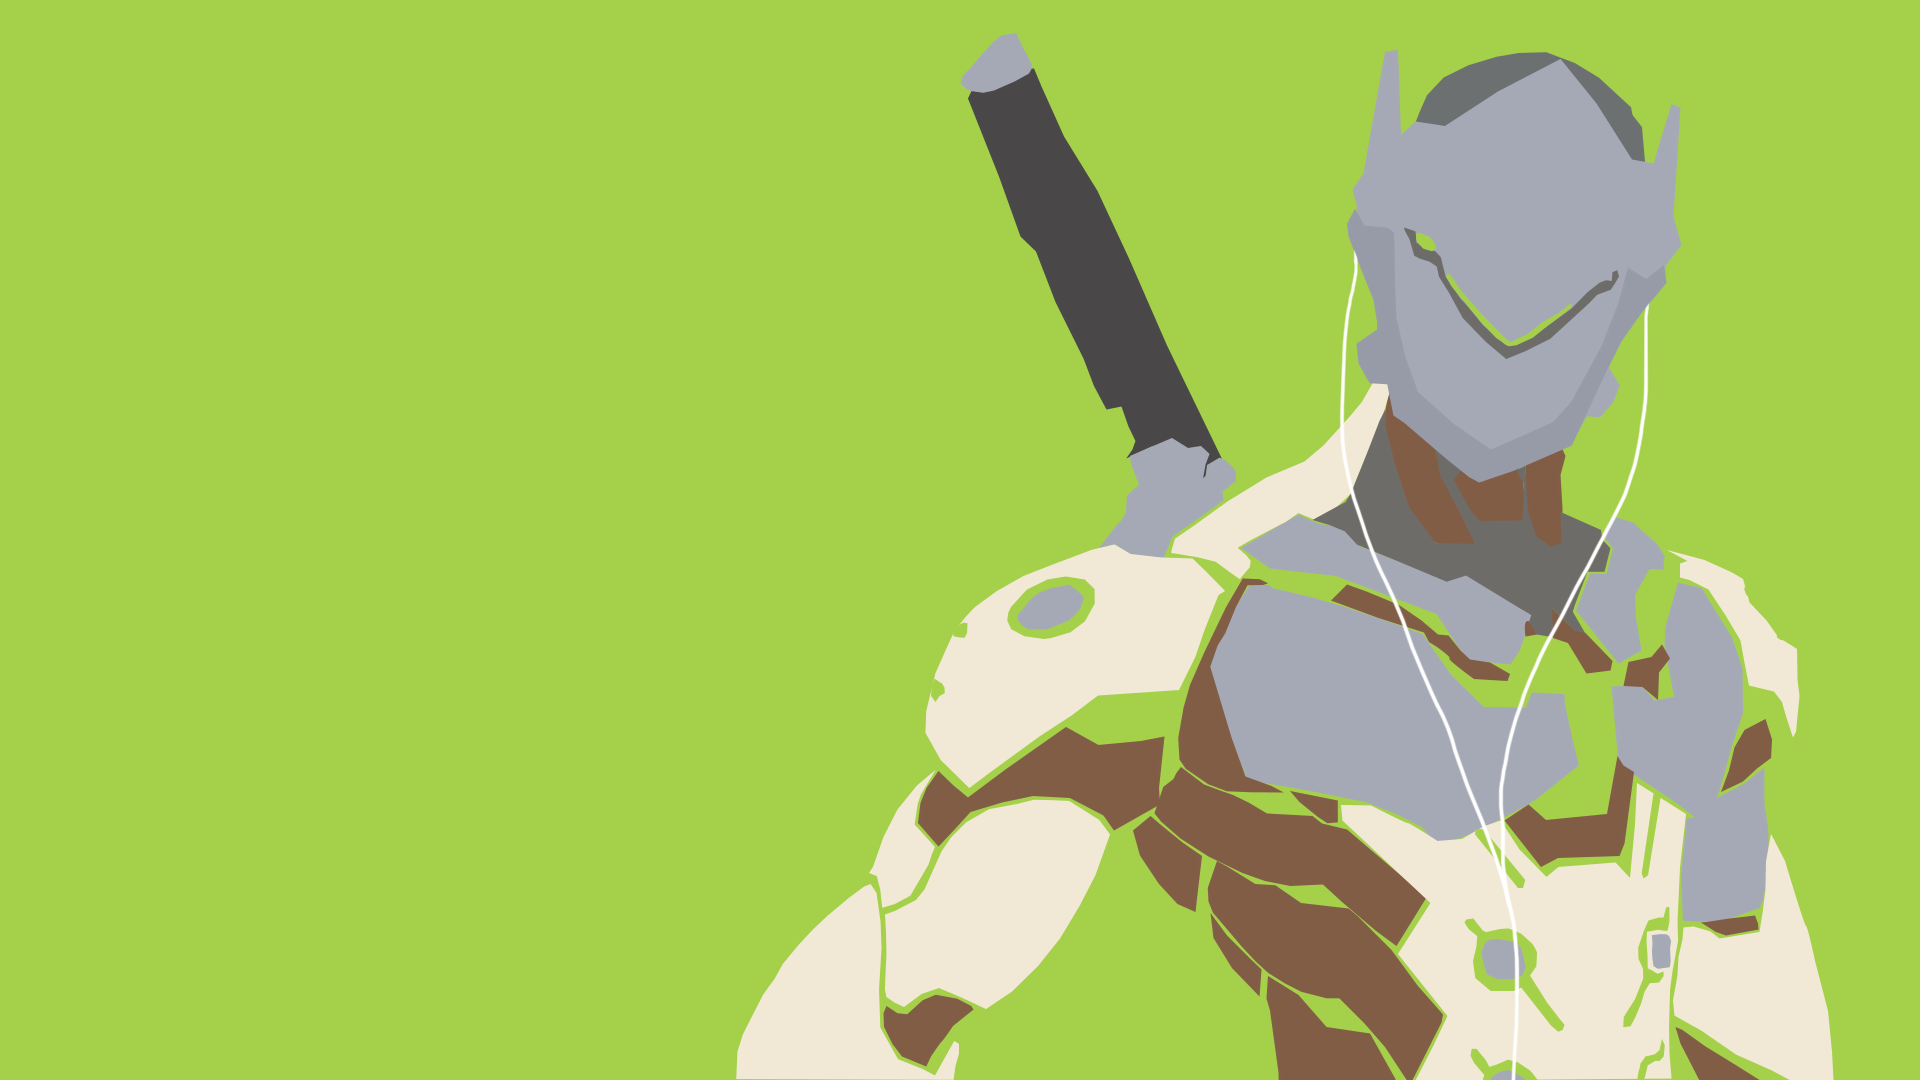 Overwatch Vector Wallpaper